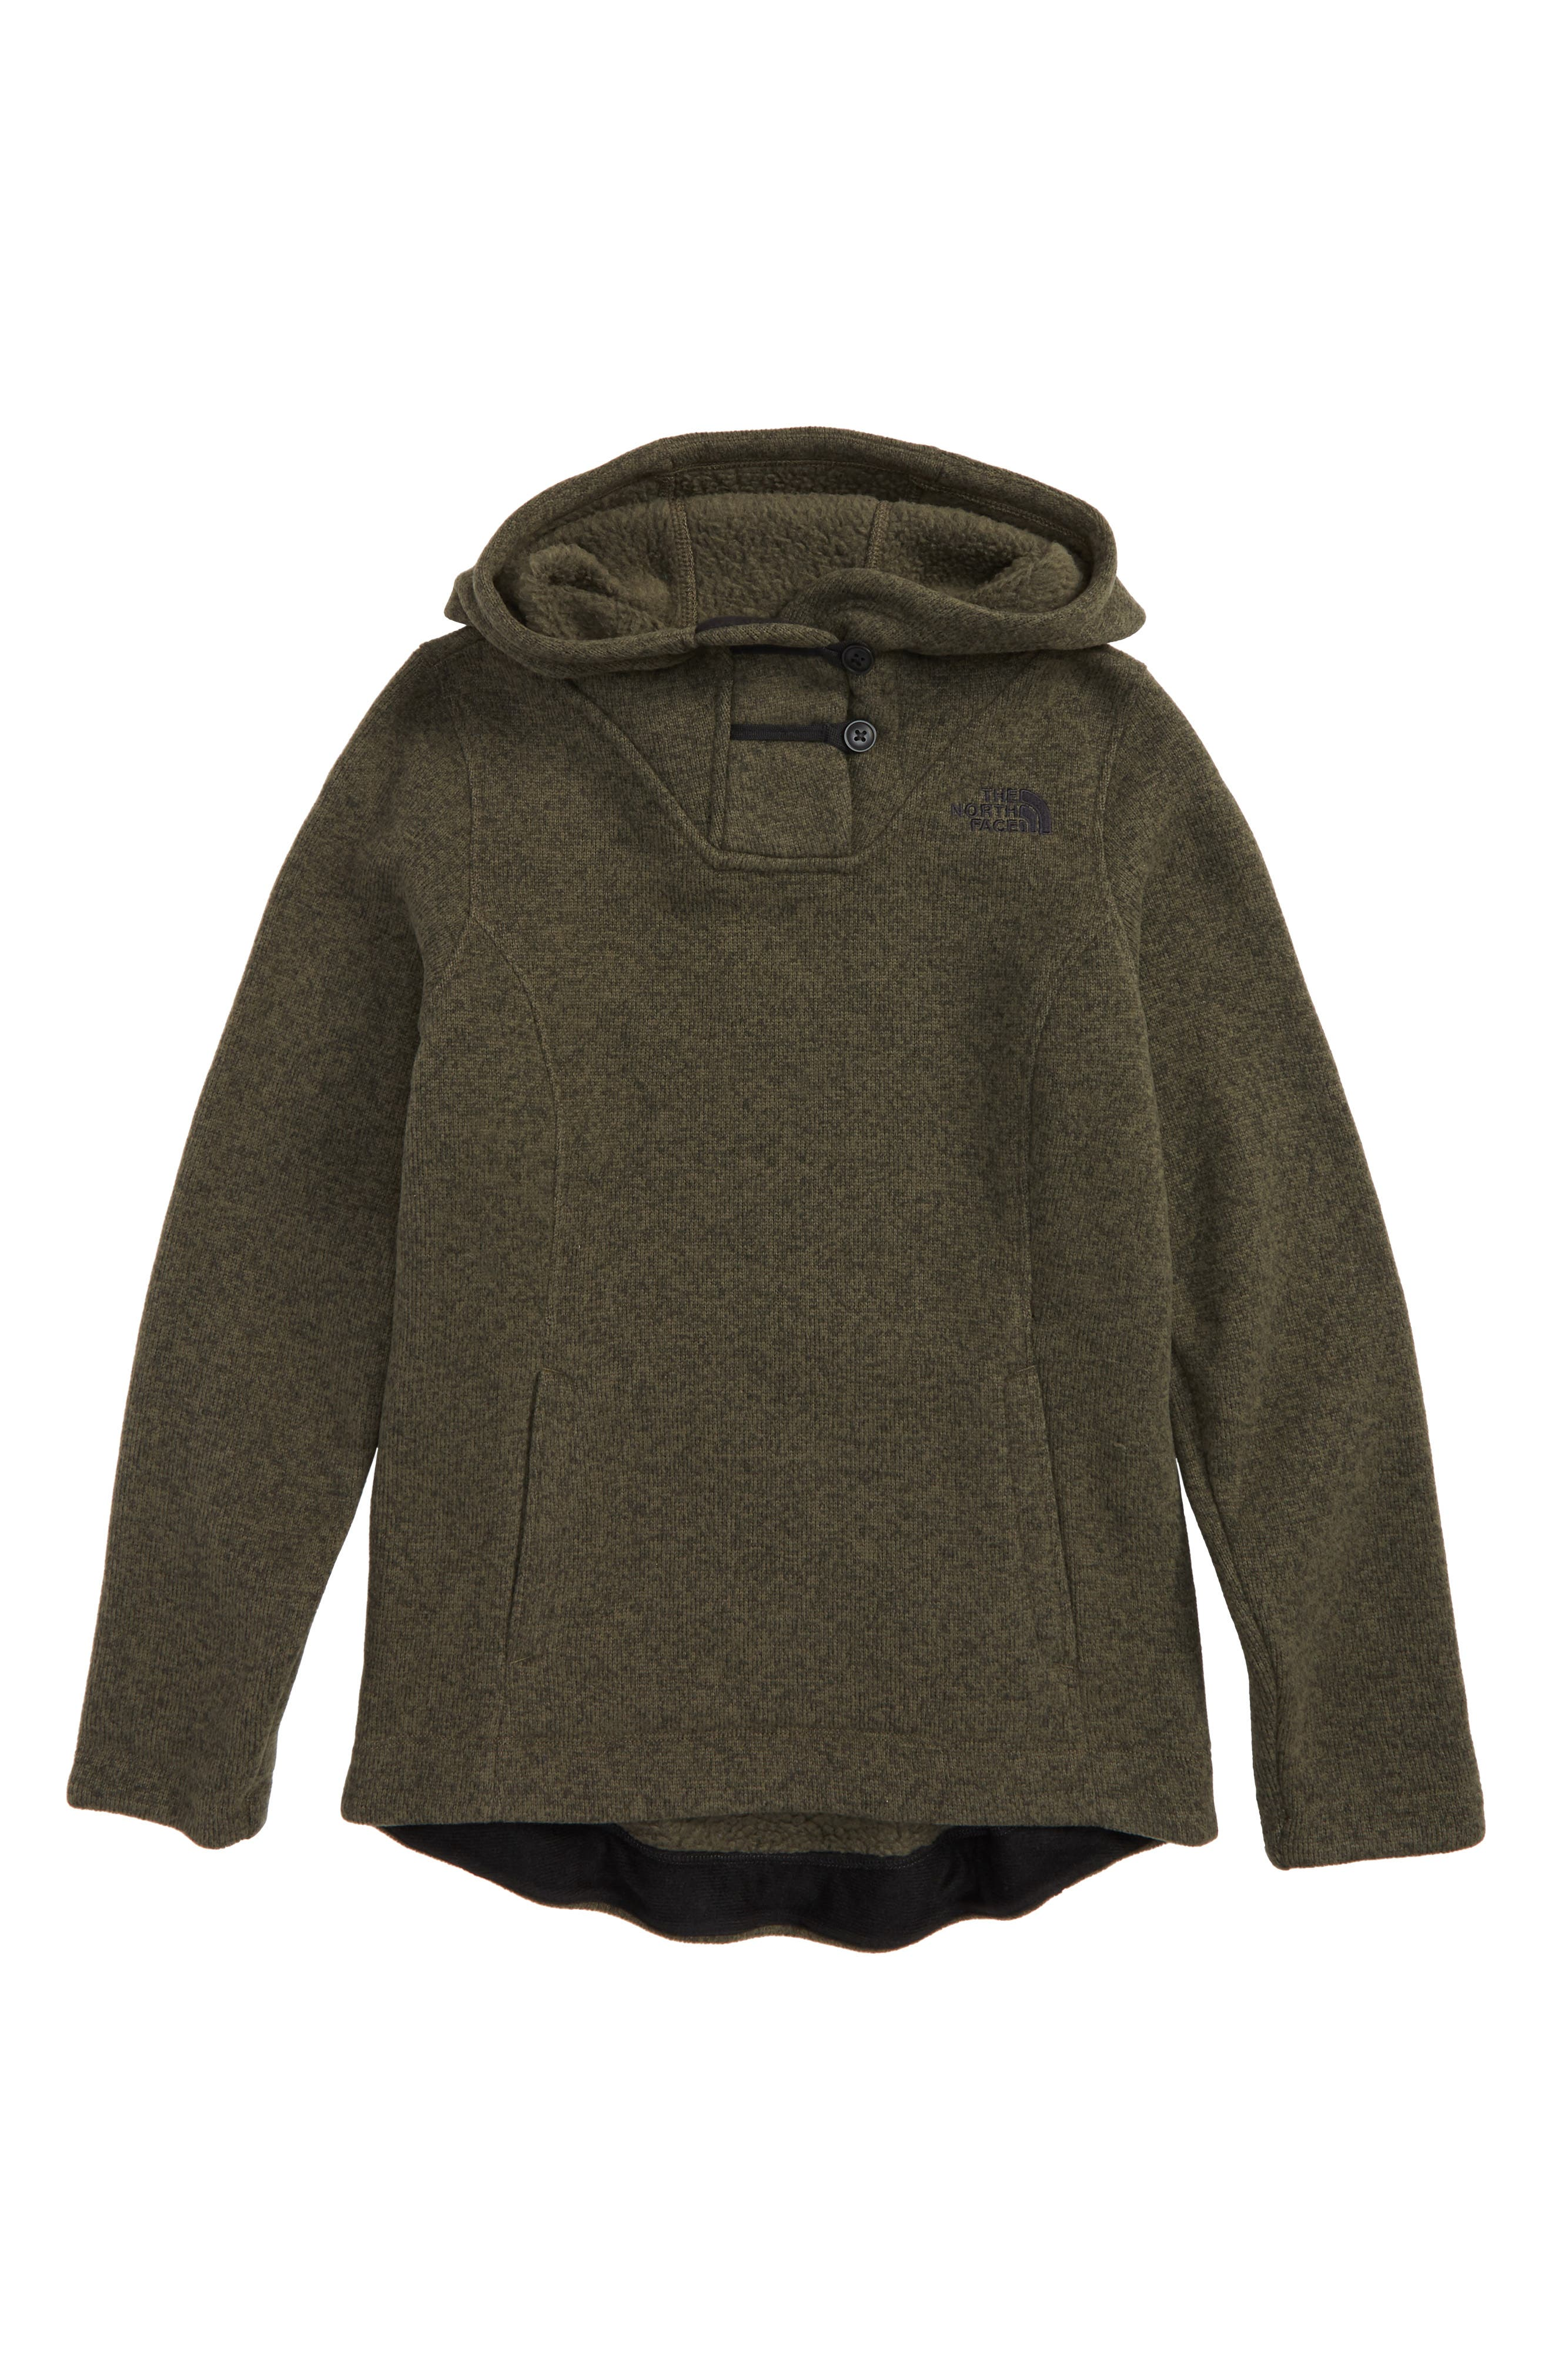 Alternate Image 1 Selected - The North Face Crescent Sunset Hoodie (Big Girls)